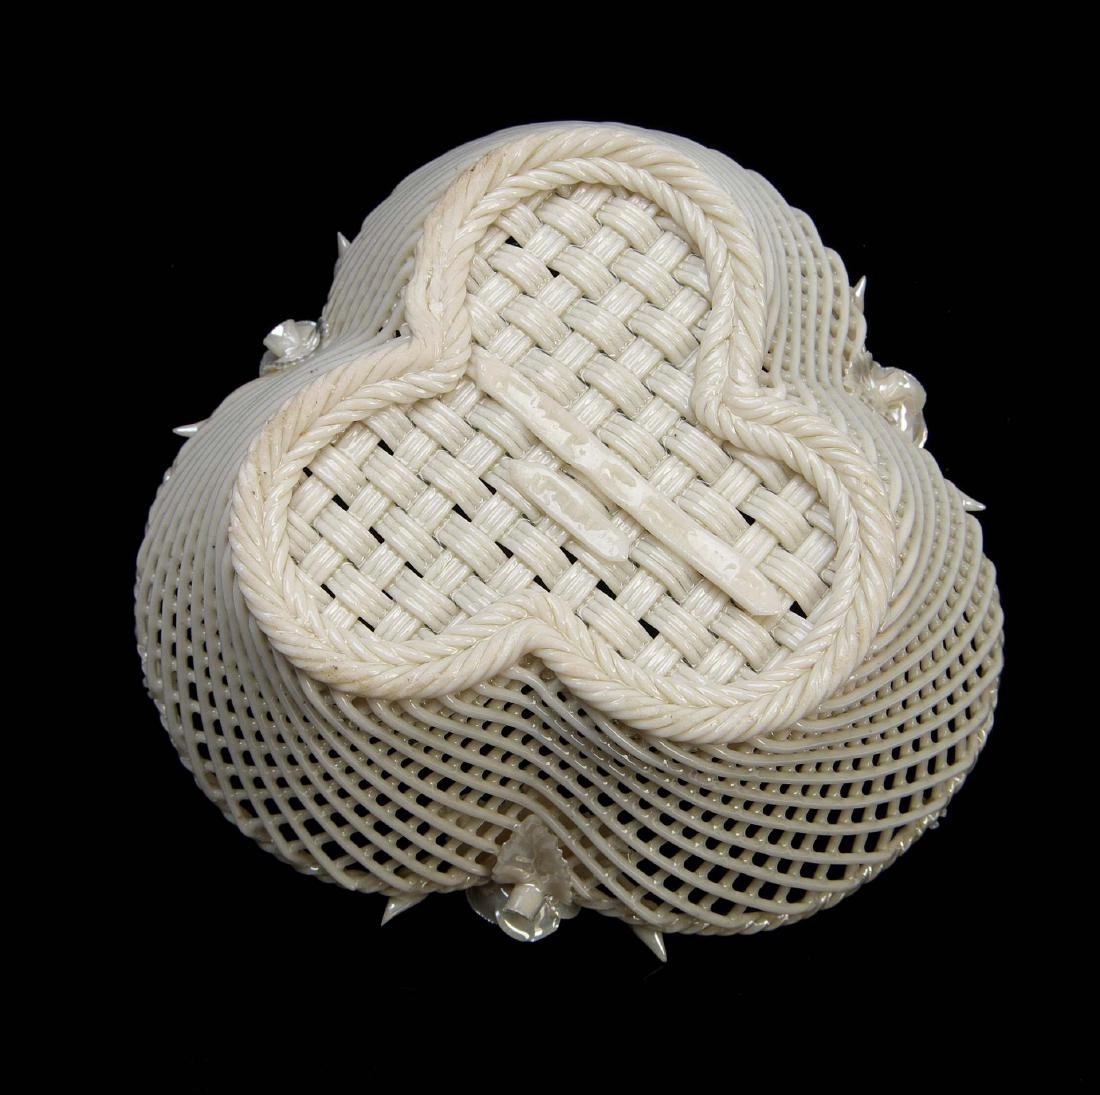 THREE IRISH BELLEEK LATTICE WORK BASKETS - 7